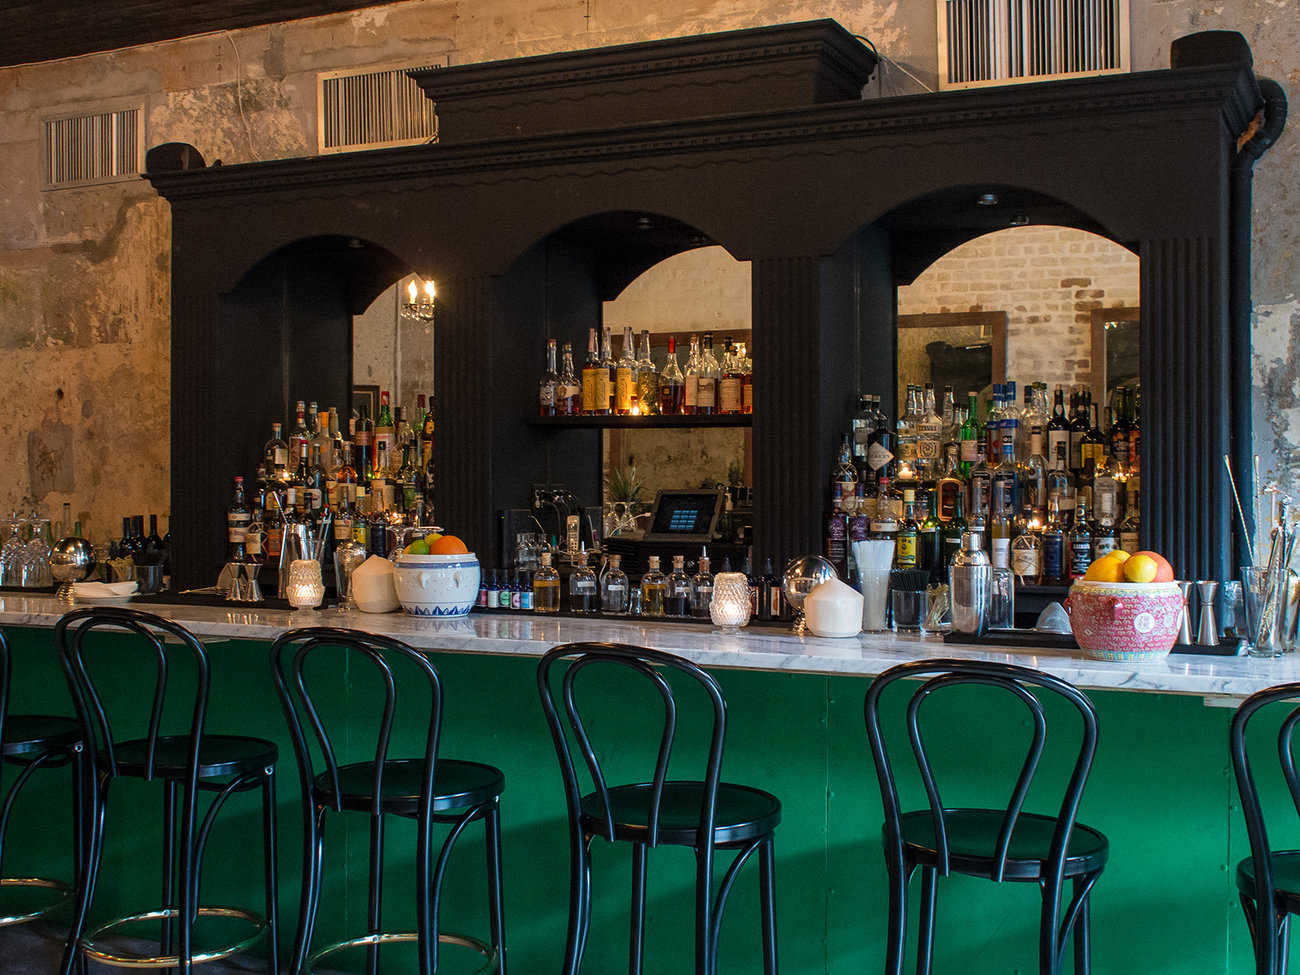 Cane and Table Bar in New Orleans